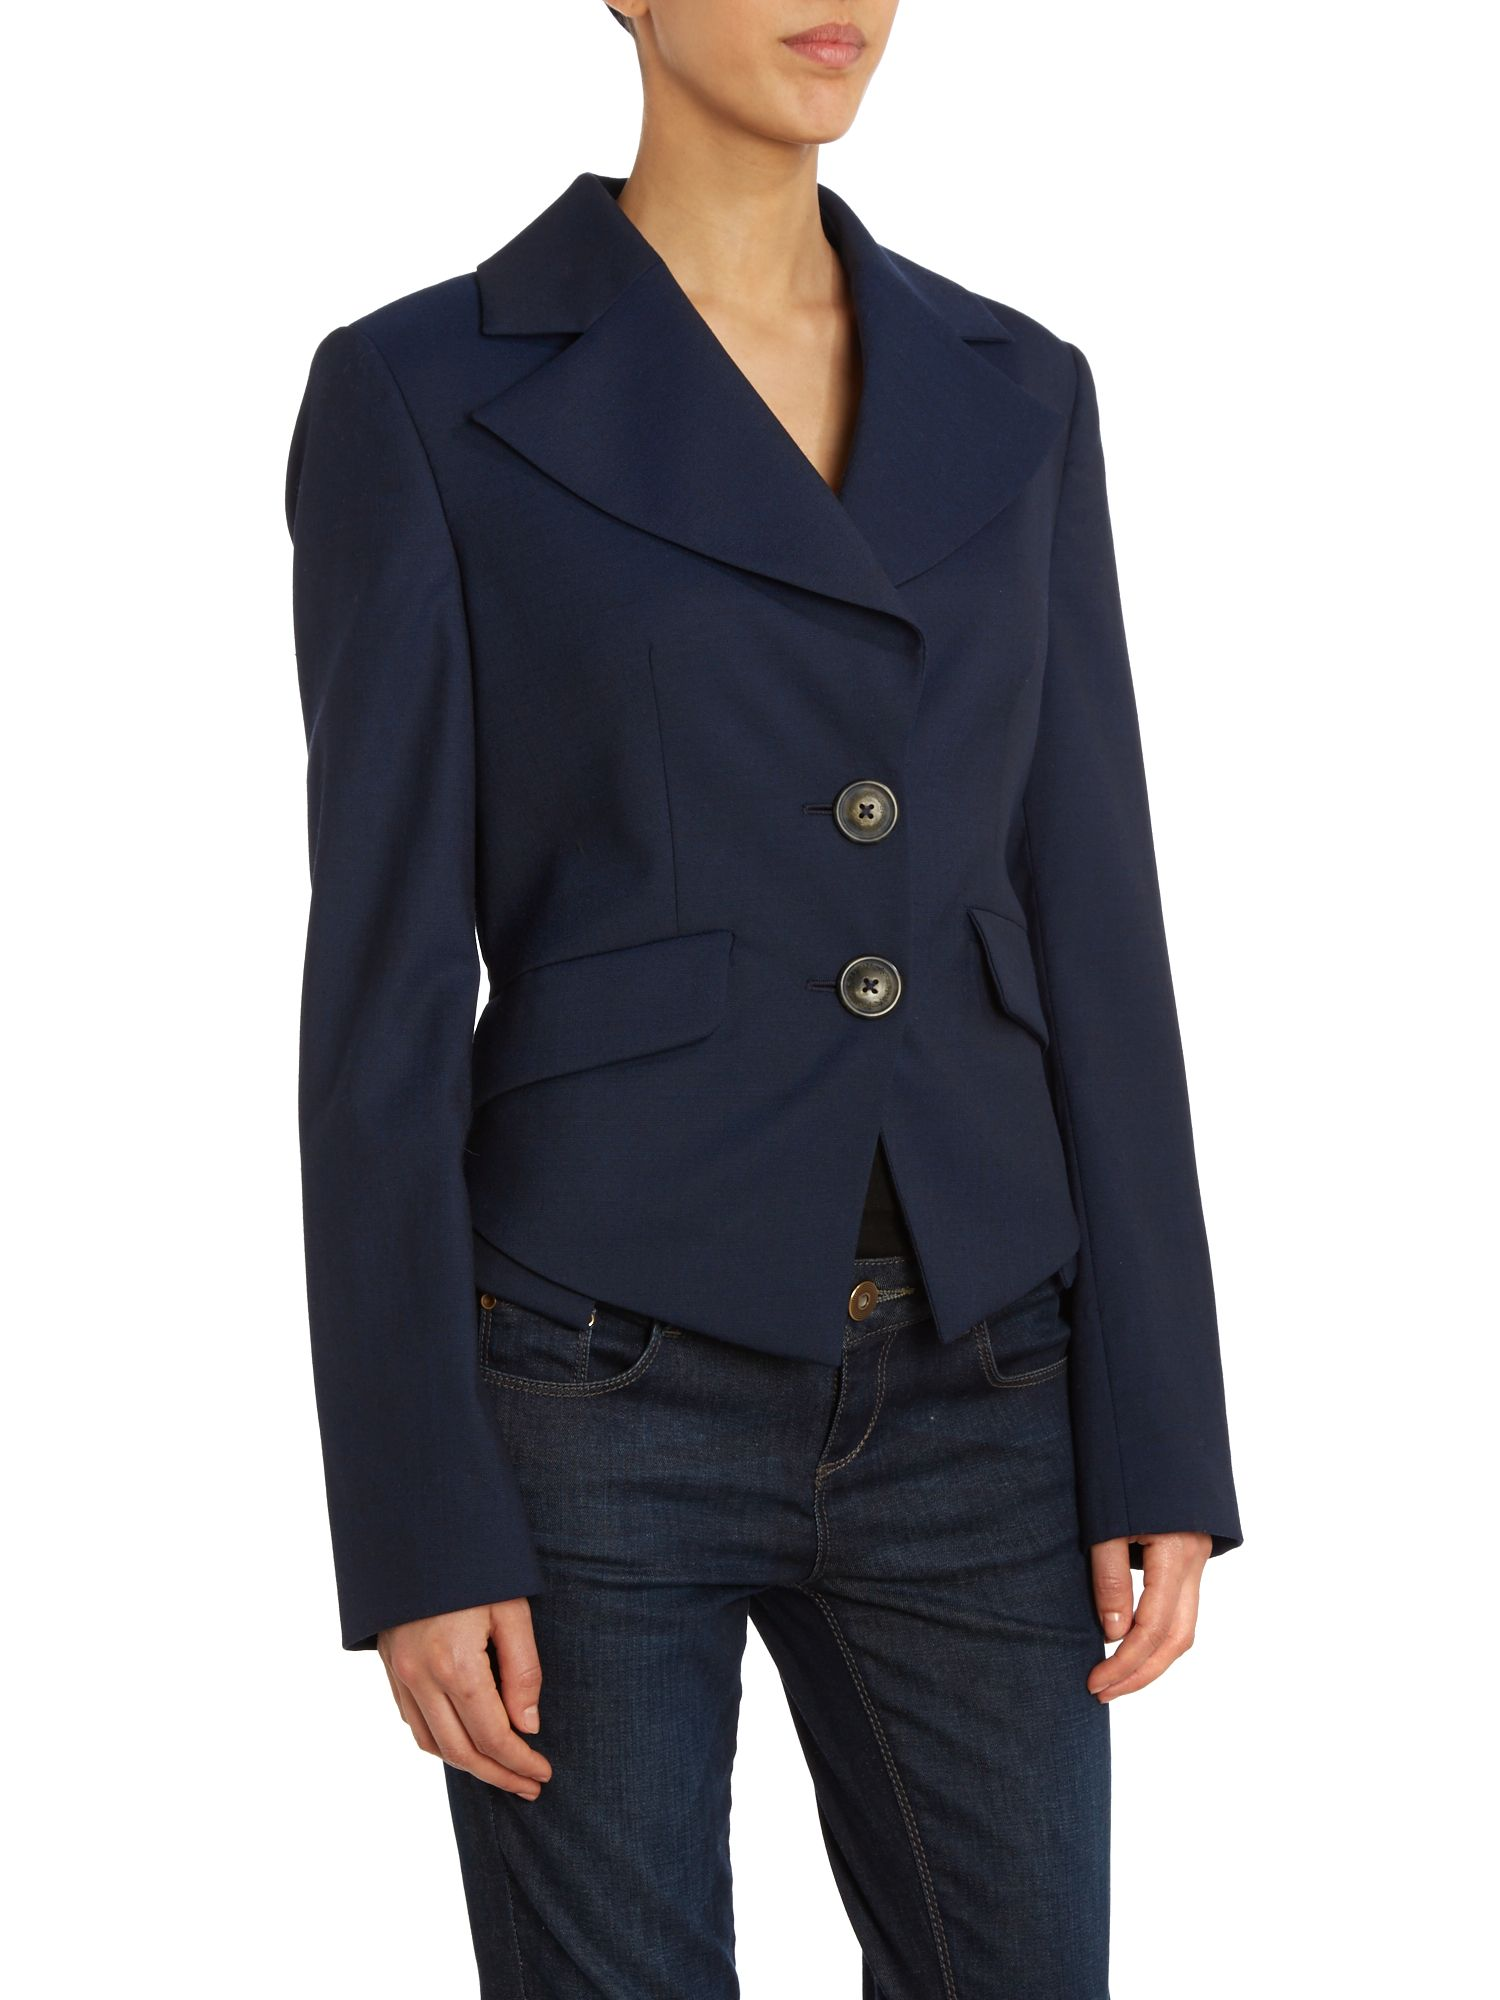 Long sleeved navy blazer